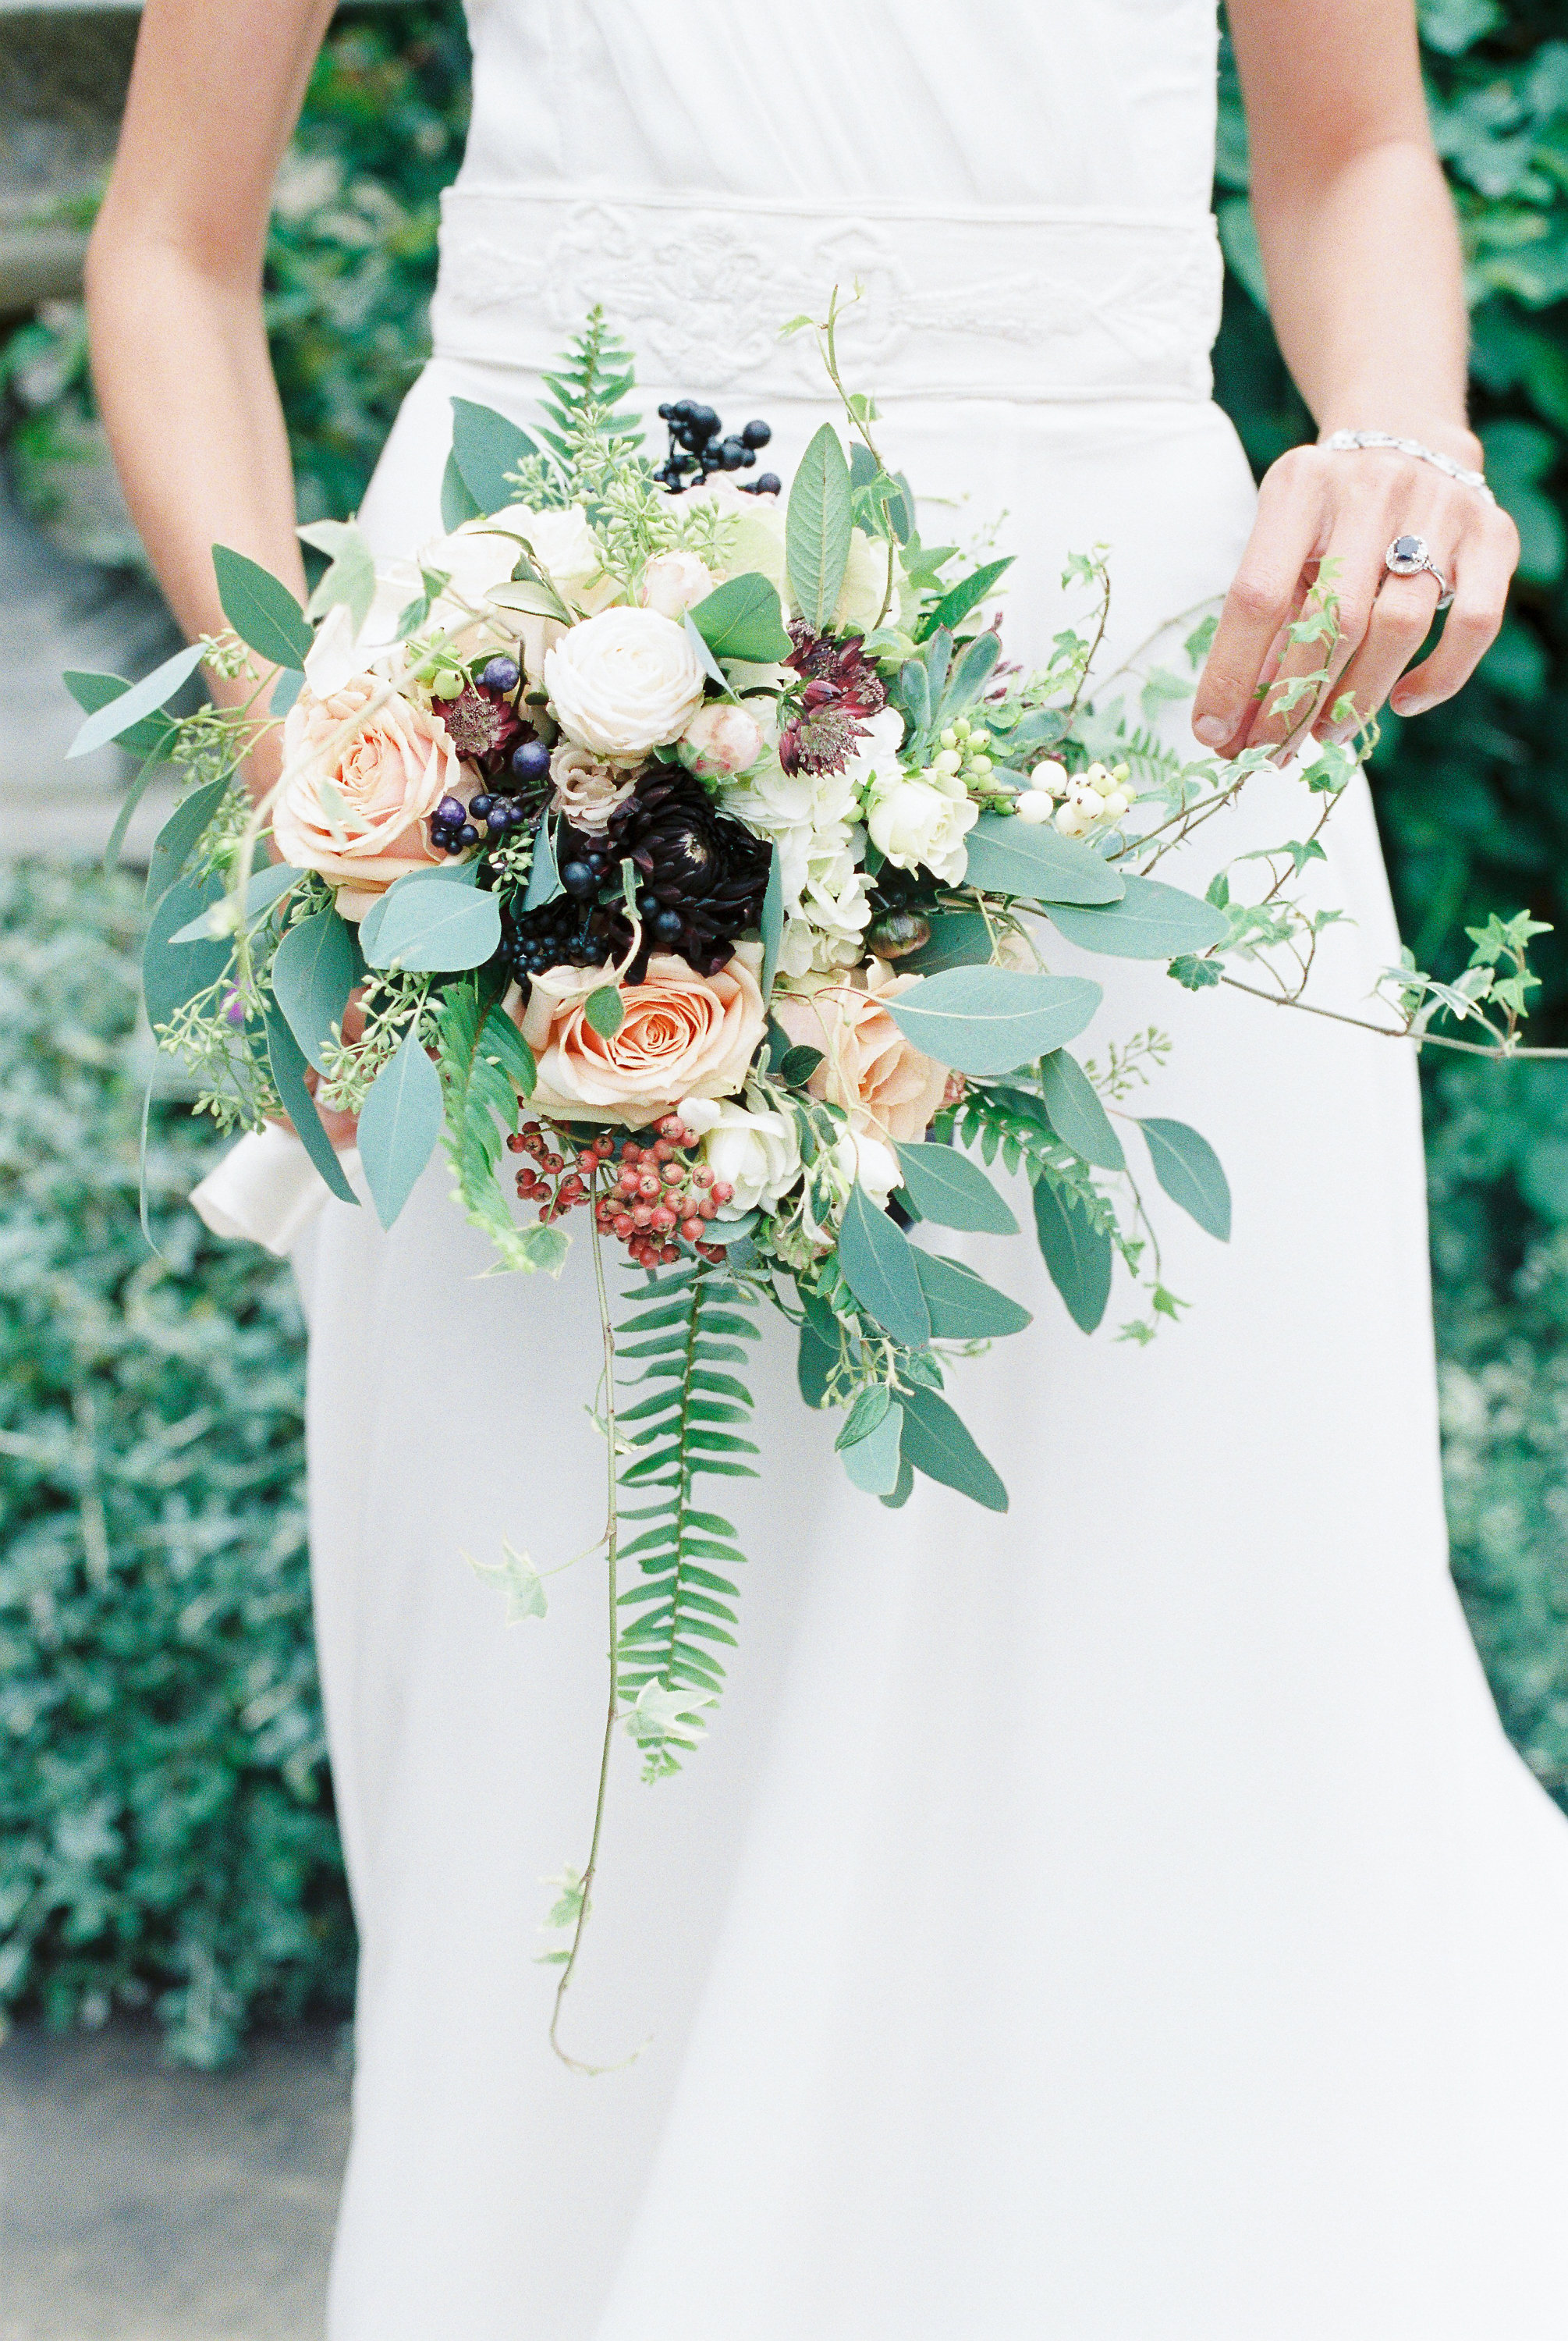 wedding bride bouquet dark fern foliage